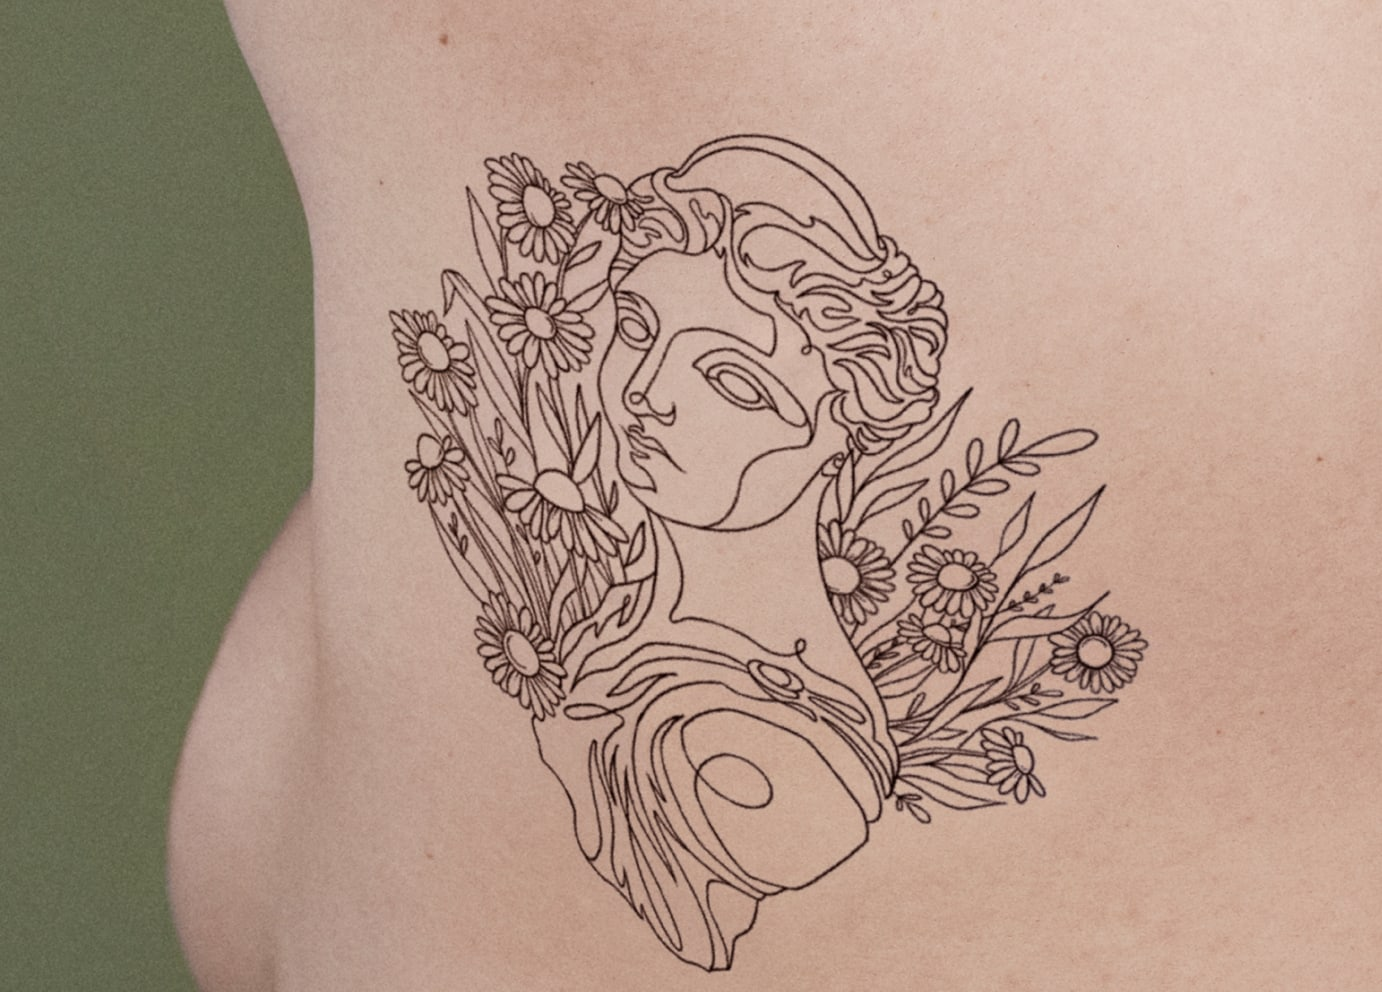 ephemeral temporary tattoo idea of abstract drawing of a woman on back